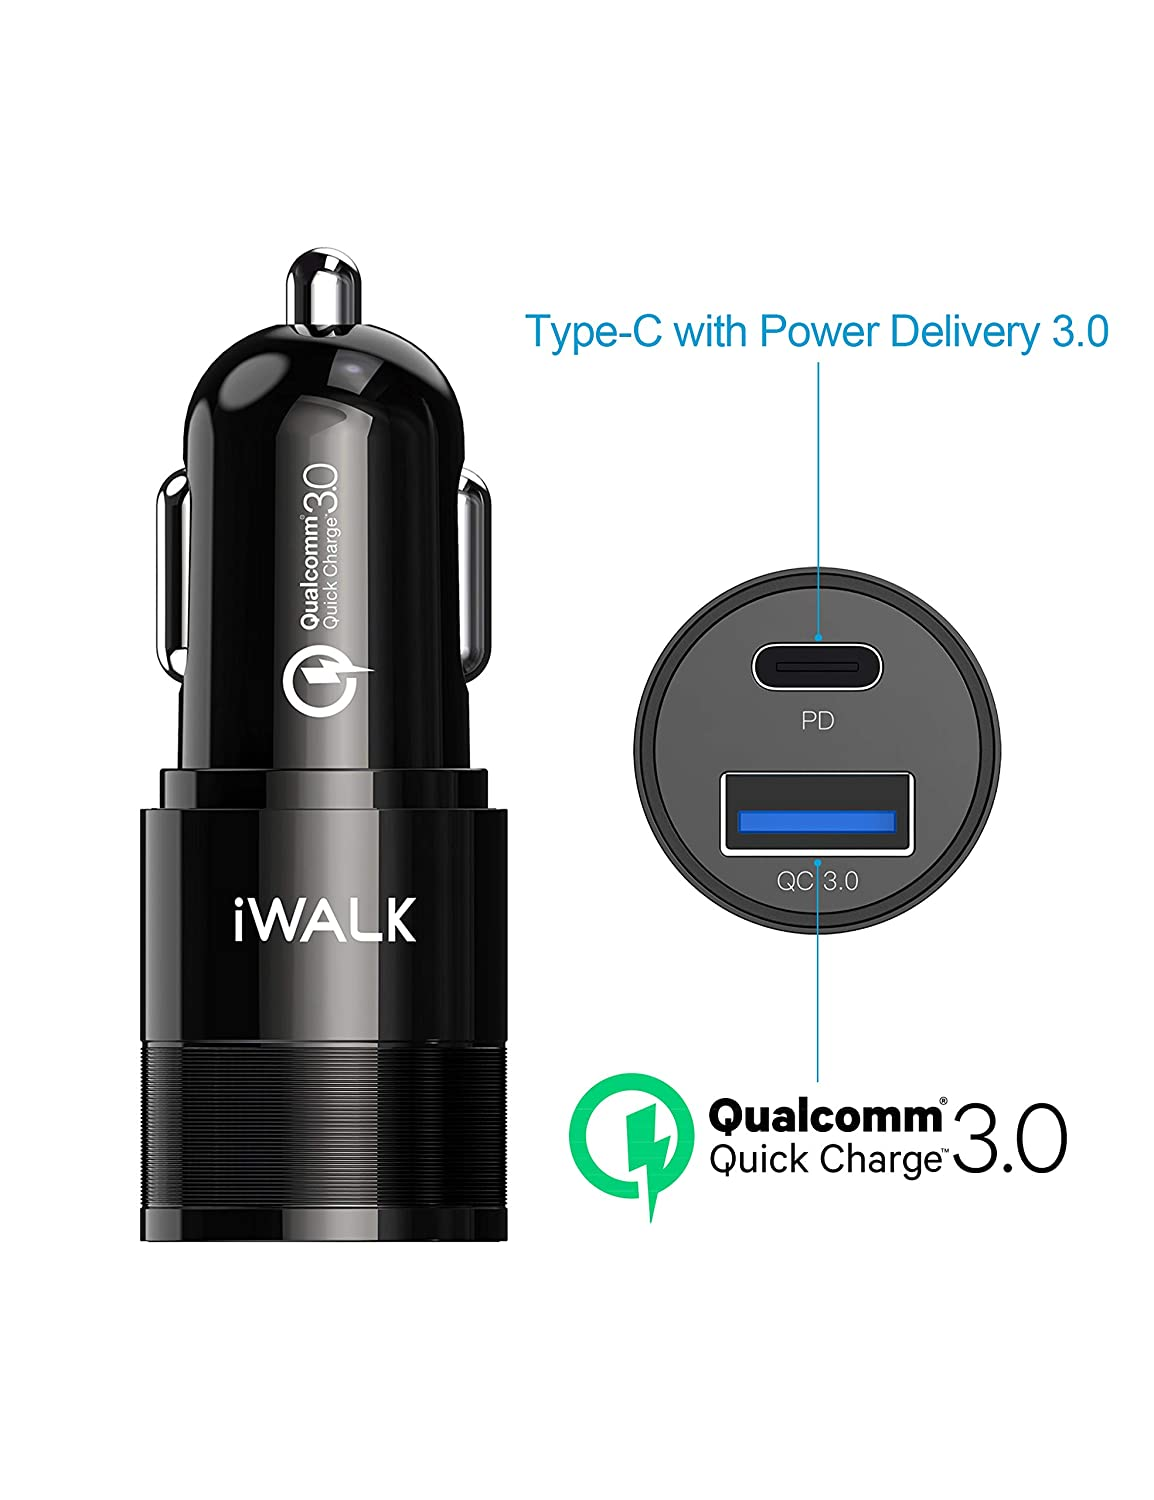 iWALK USB C PD Car Charger with 36W Output, 18W USB-C 5V 2.4A Dual Port Compatible with Google Pixel 2 XL, MacBook, iPhone Xs Max XR X, Nintendo Switch and More